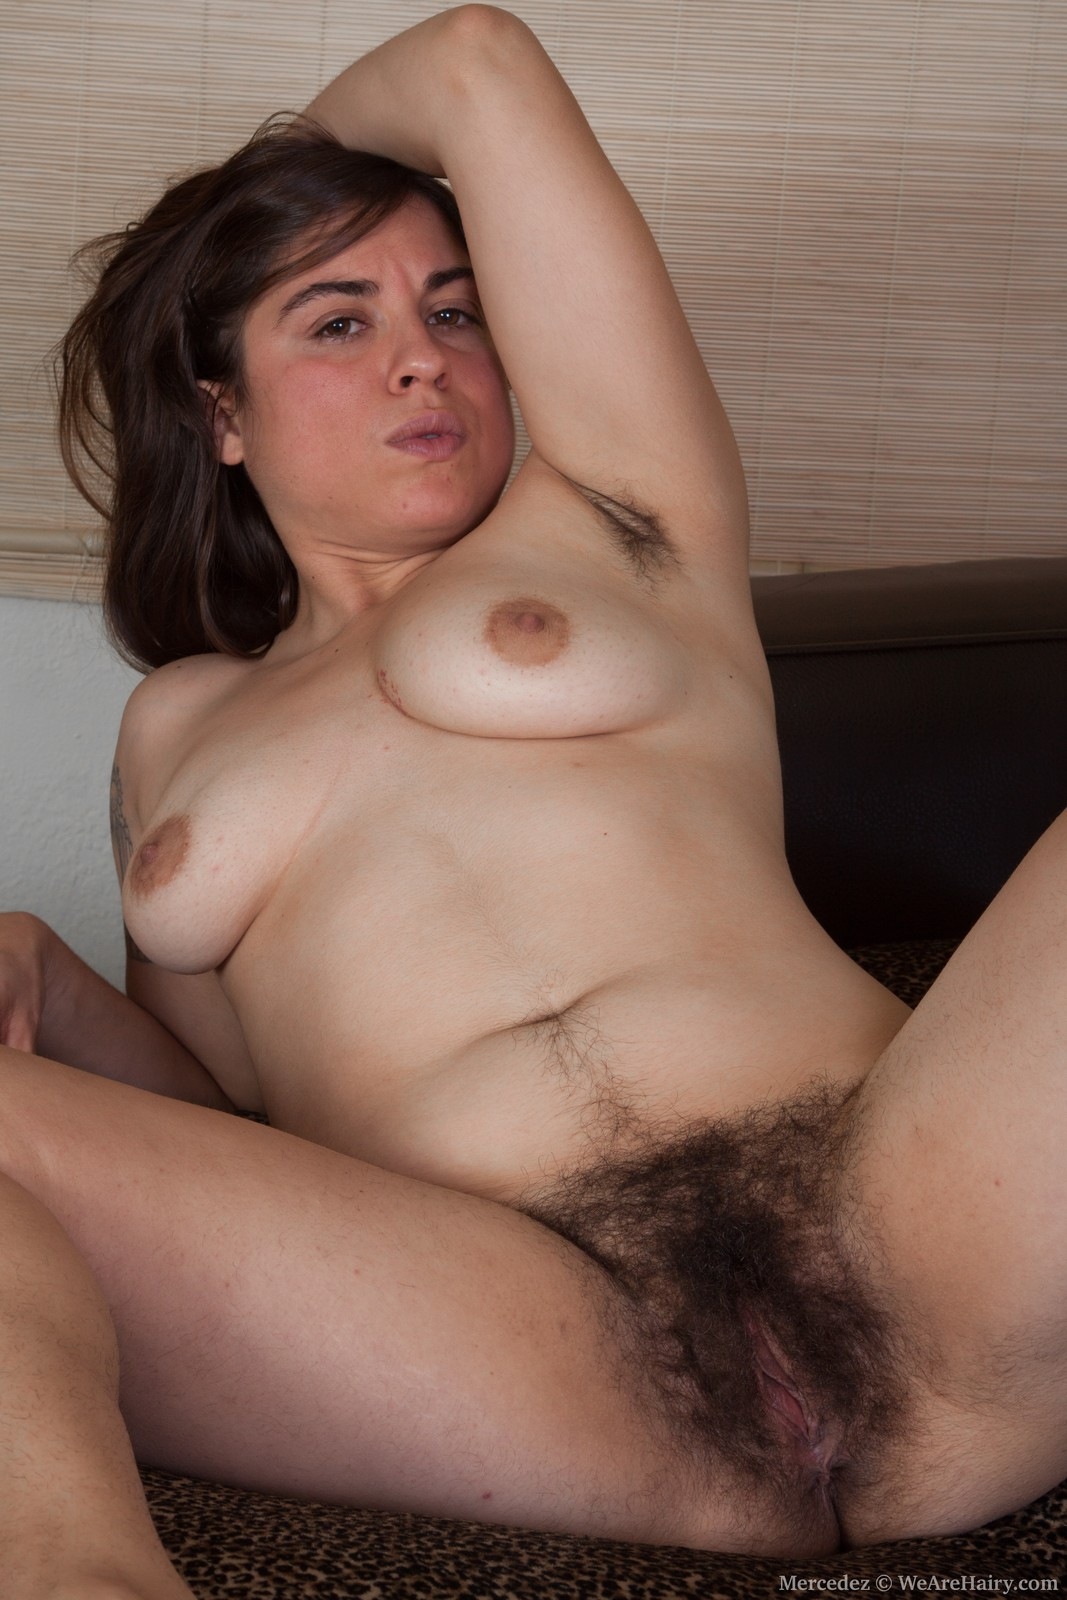 PUSSIES EXTREMELY HAIRY